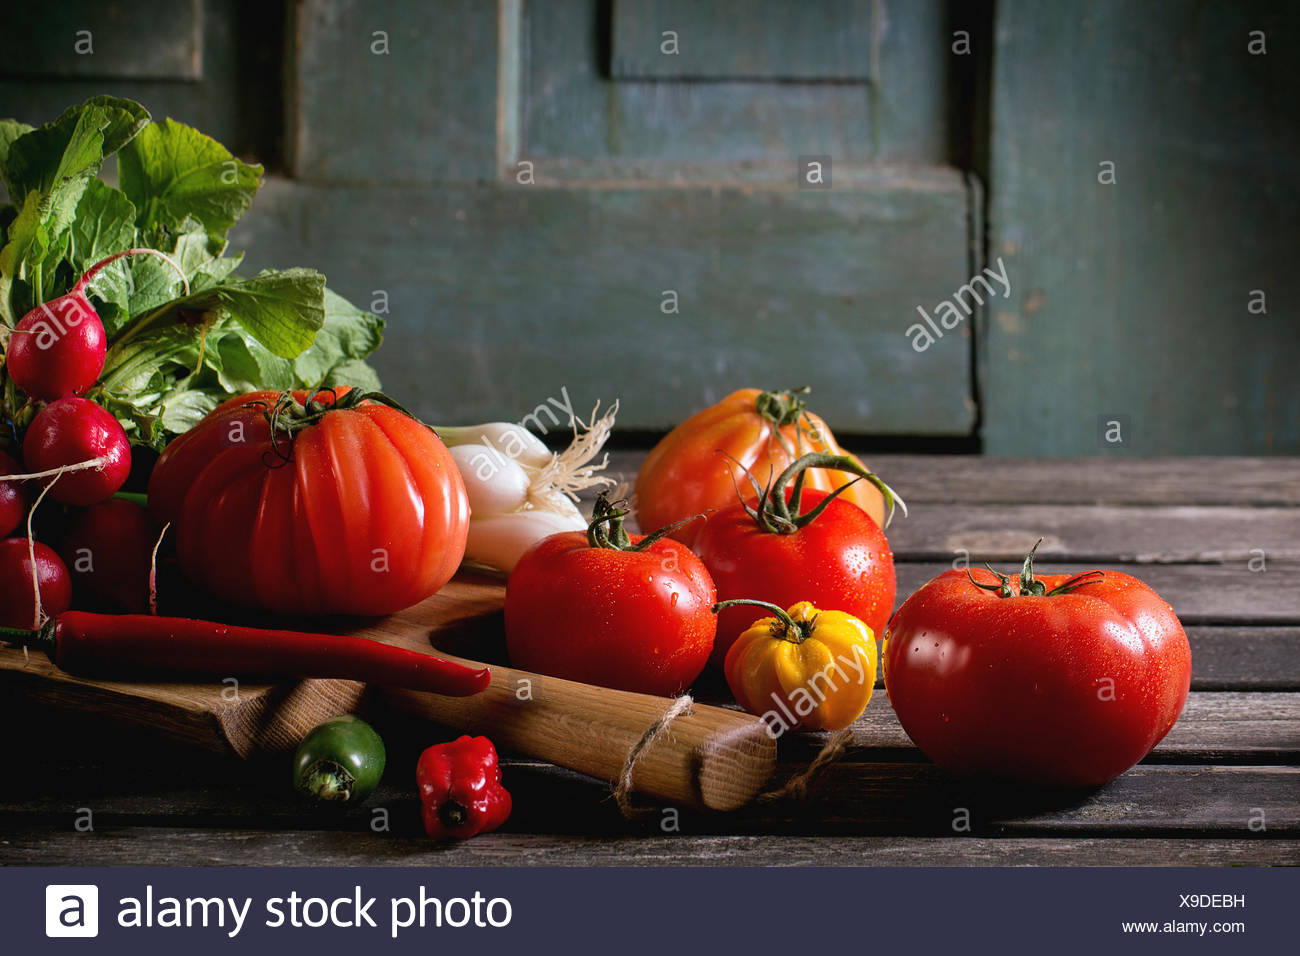 Heap of fresh ripe colorful vegetables tomatoes, chili peppers, green onion and bunch of radish on wooden chopping board over ol - Stock Image